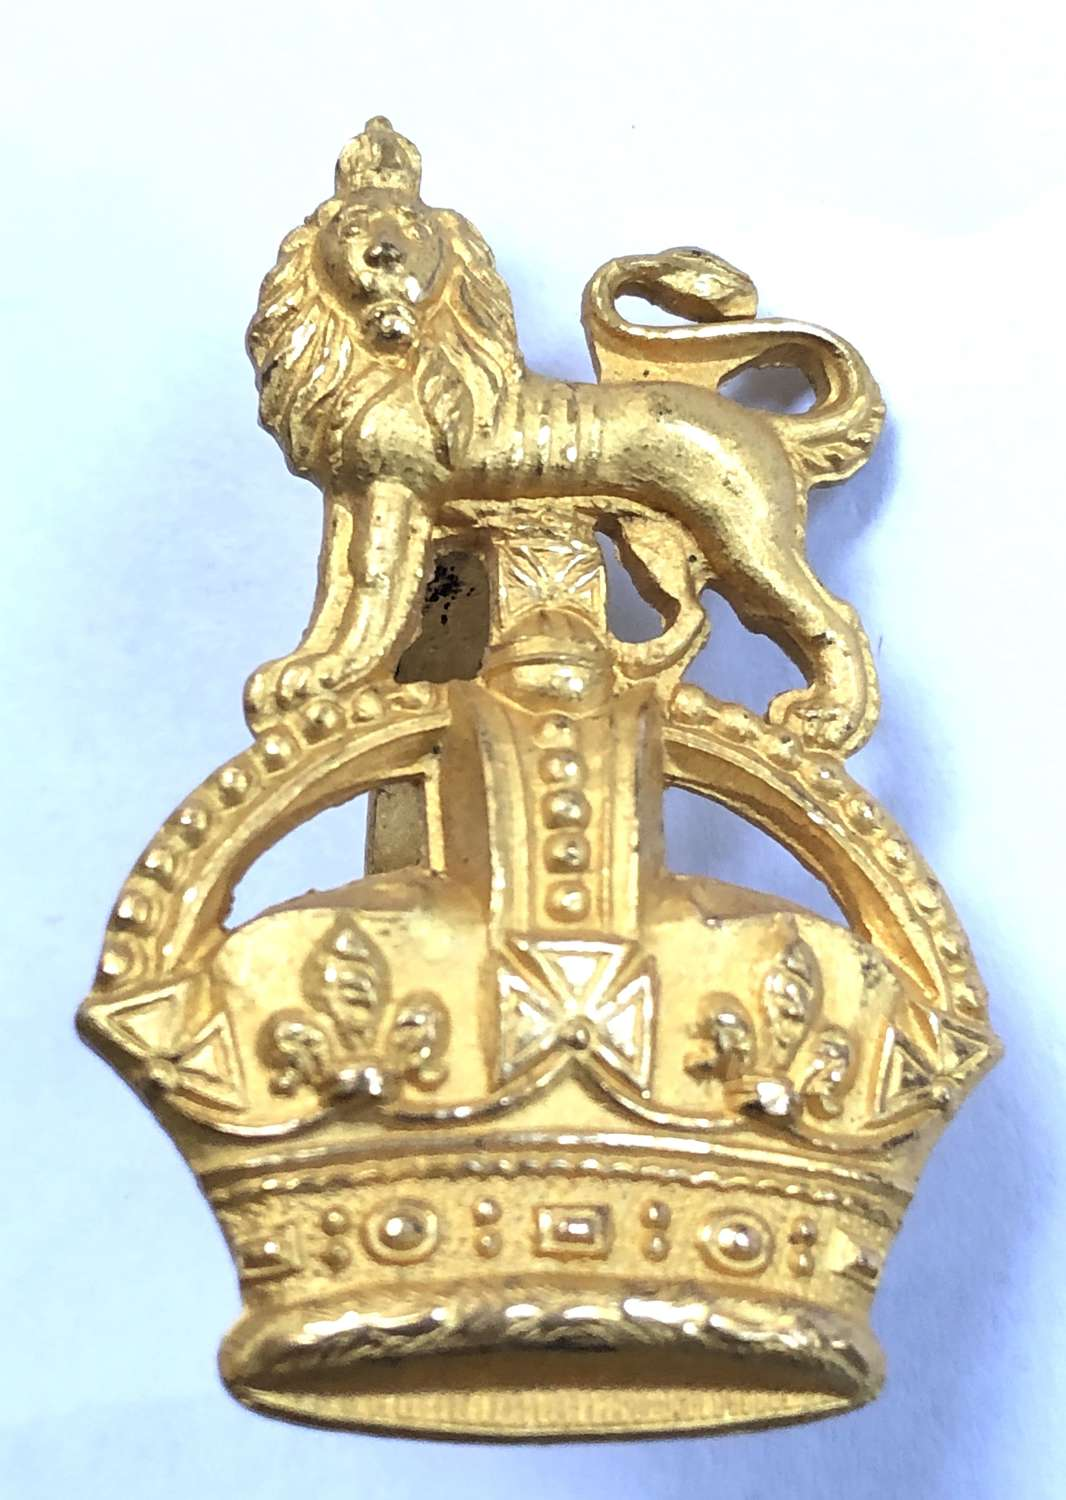 Staff Officer post 1901 gilt cap badge